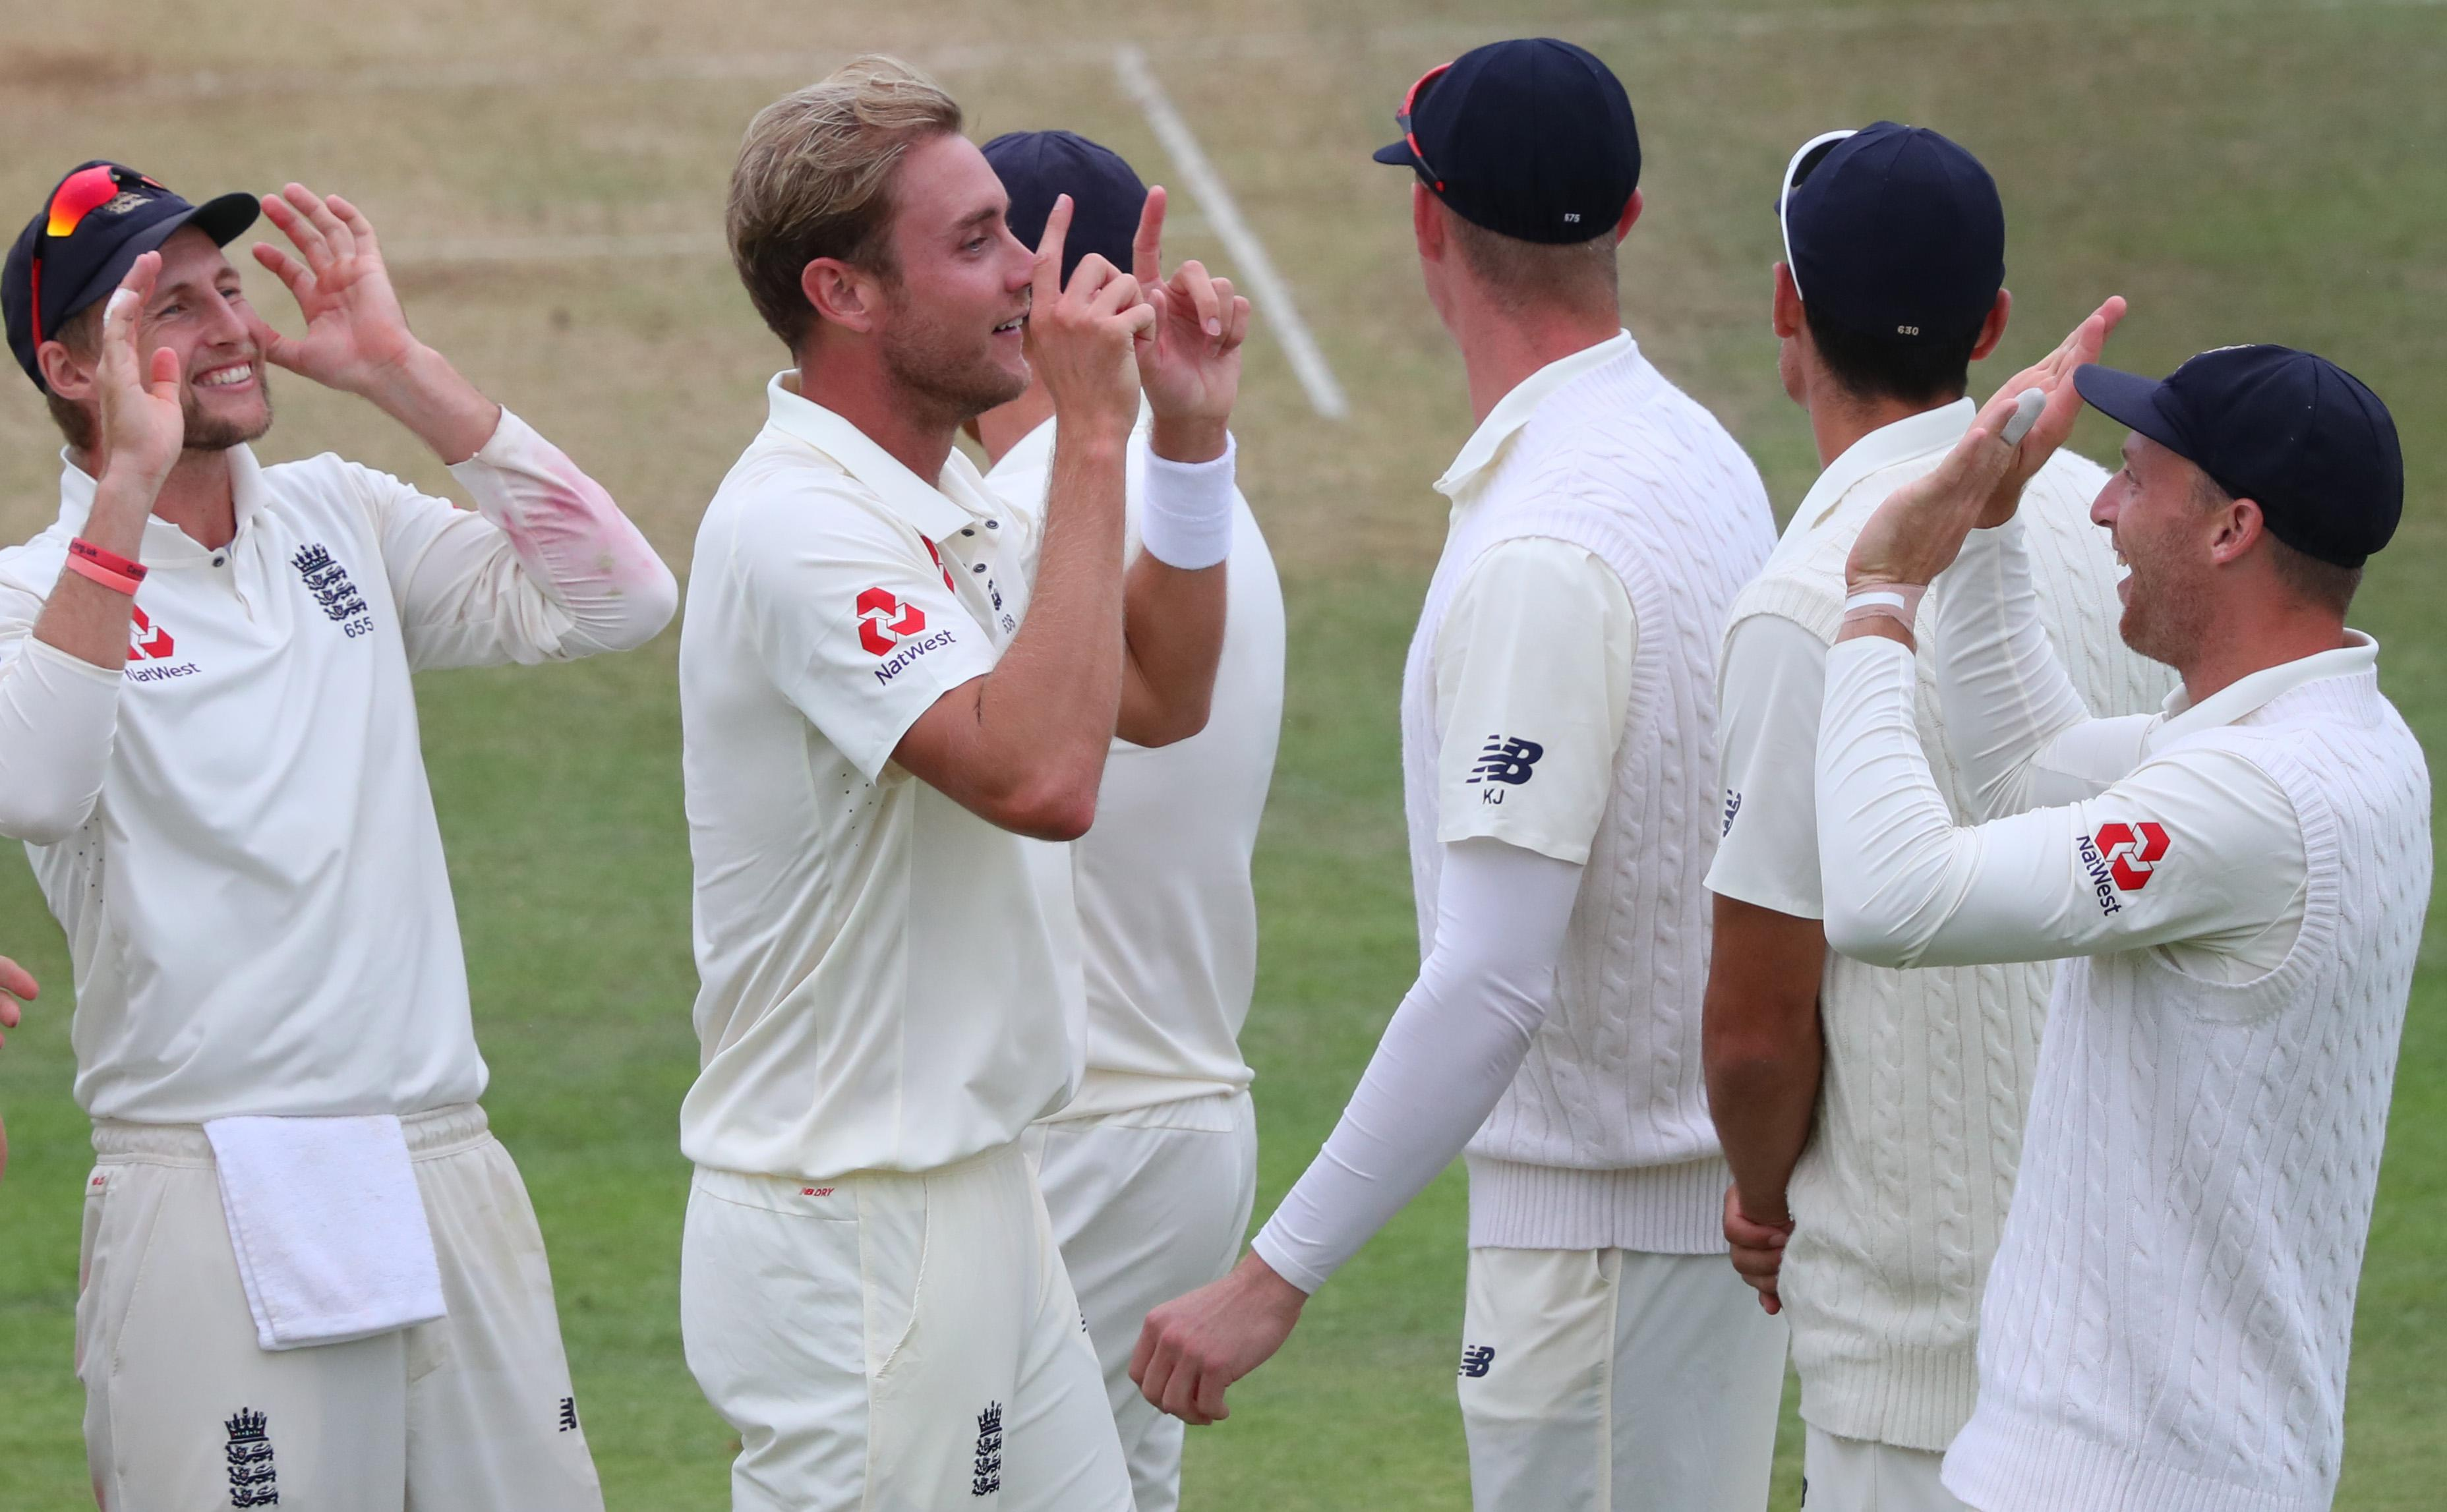 England enjoyed a dominant win at Lord's and are 2-0 up in the series